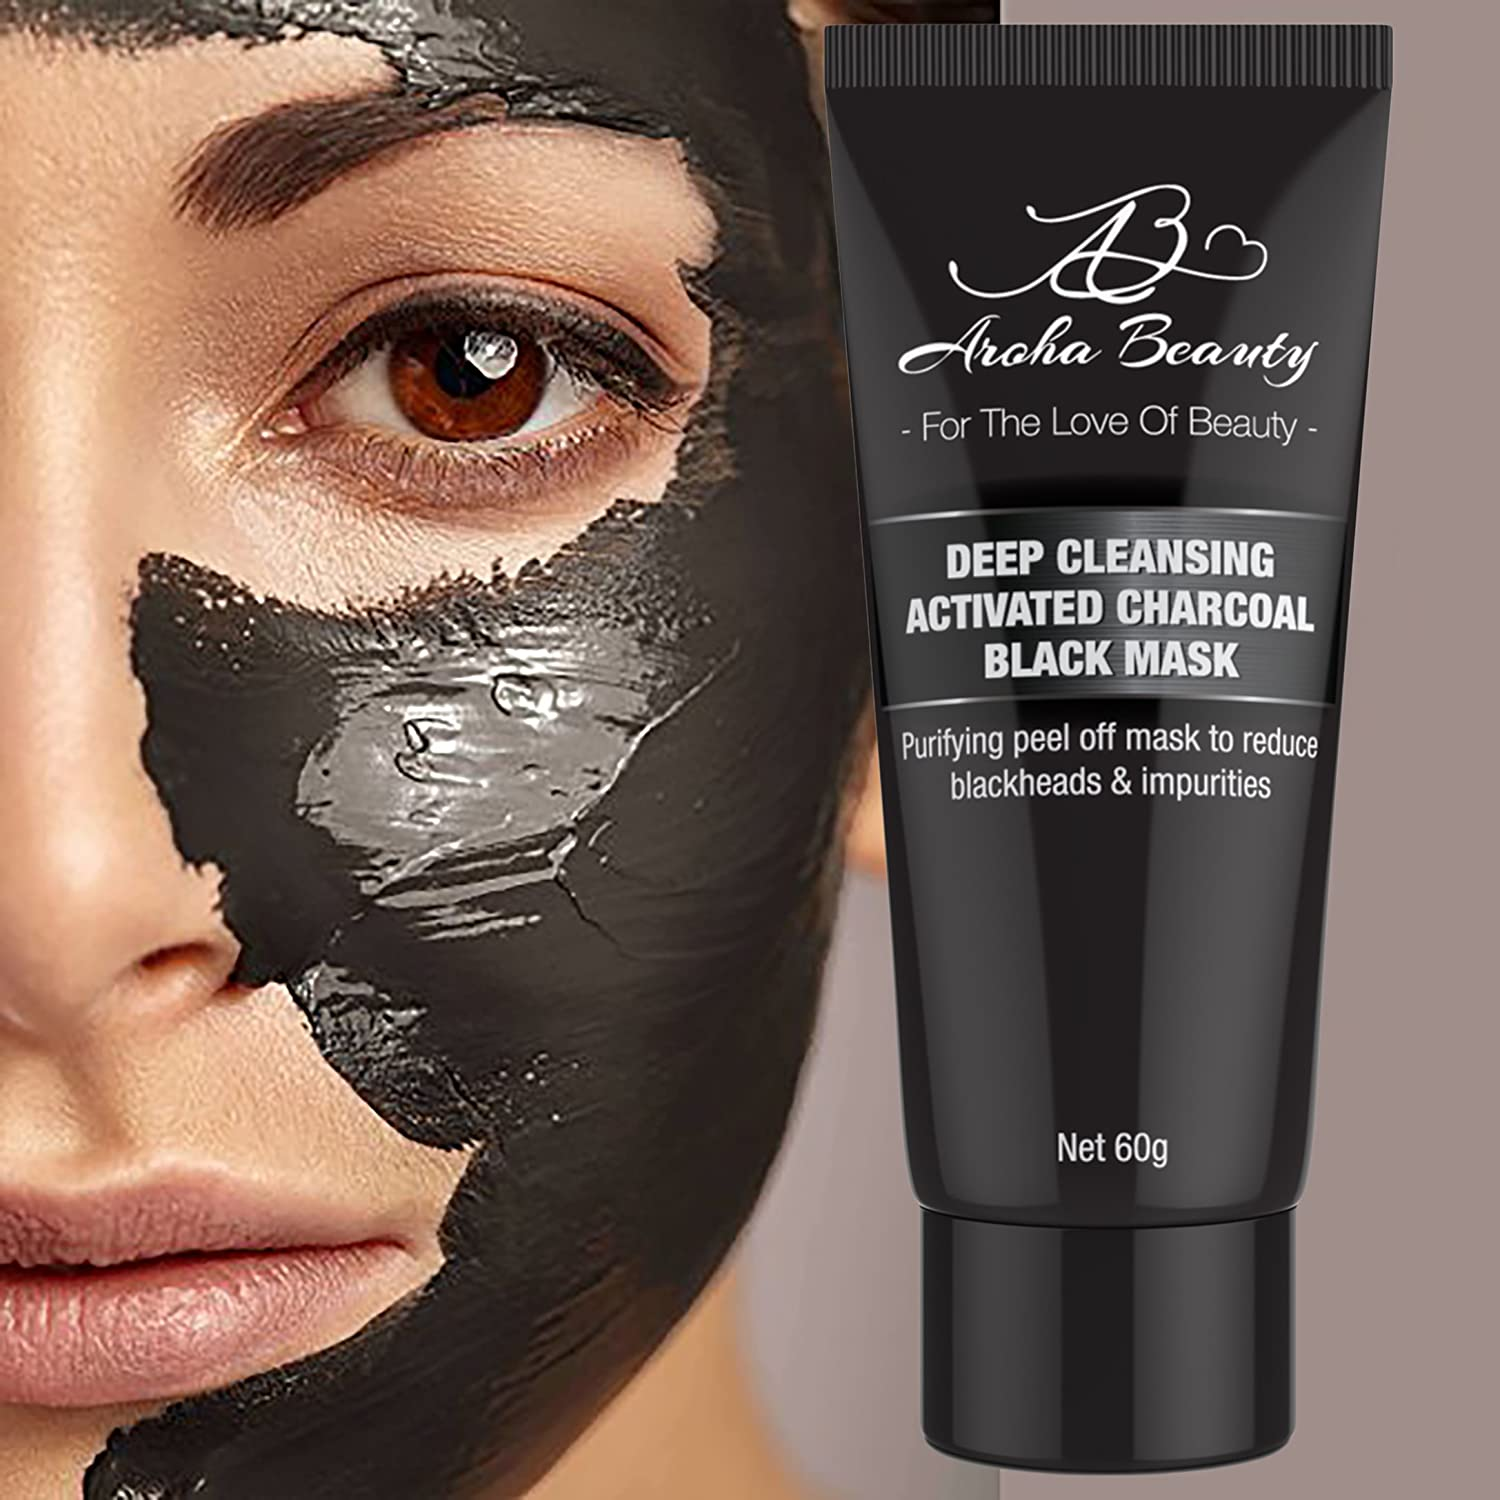 Aroha Beauty Blackhead Peel Off Mask - Charcoal Face Mask - Bamboo Peel Off Mask Extractor - Blackhead Removing and Cleaning - Deep Cleanses Skin and Removes Dirt from Pores